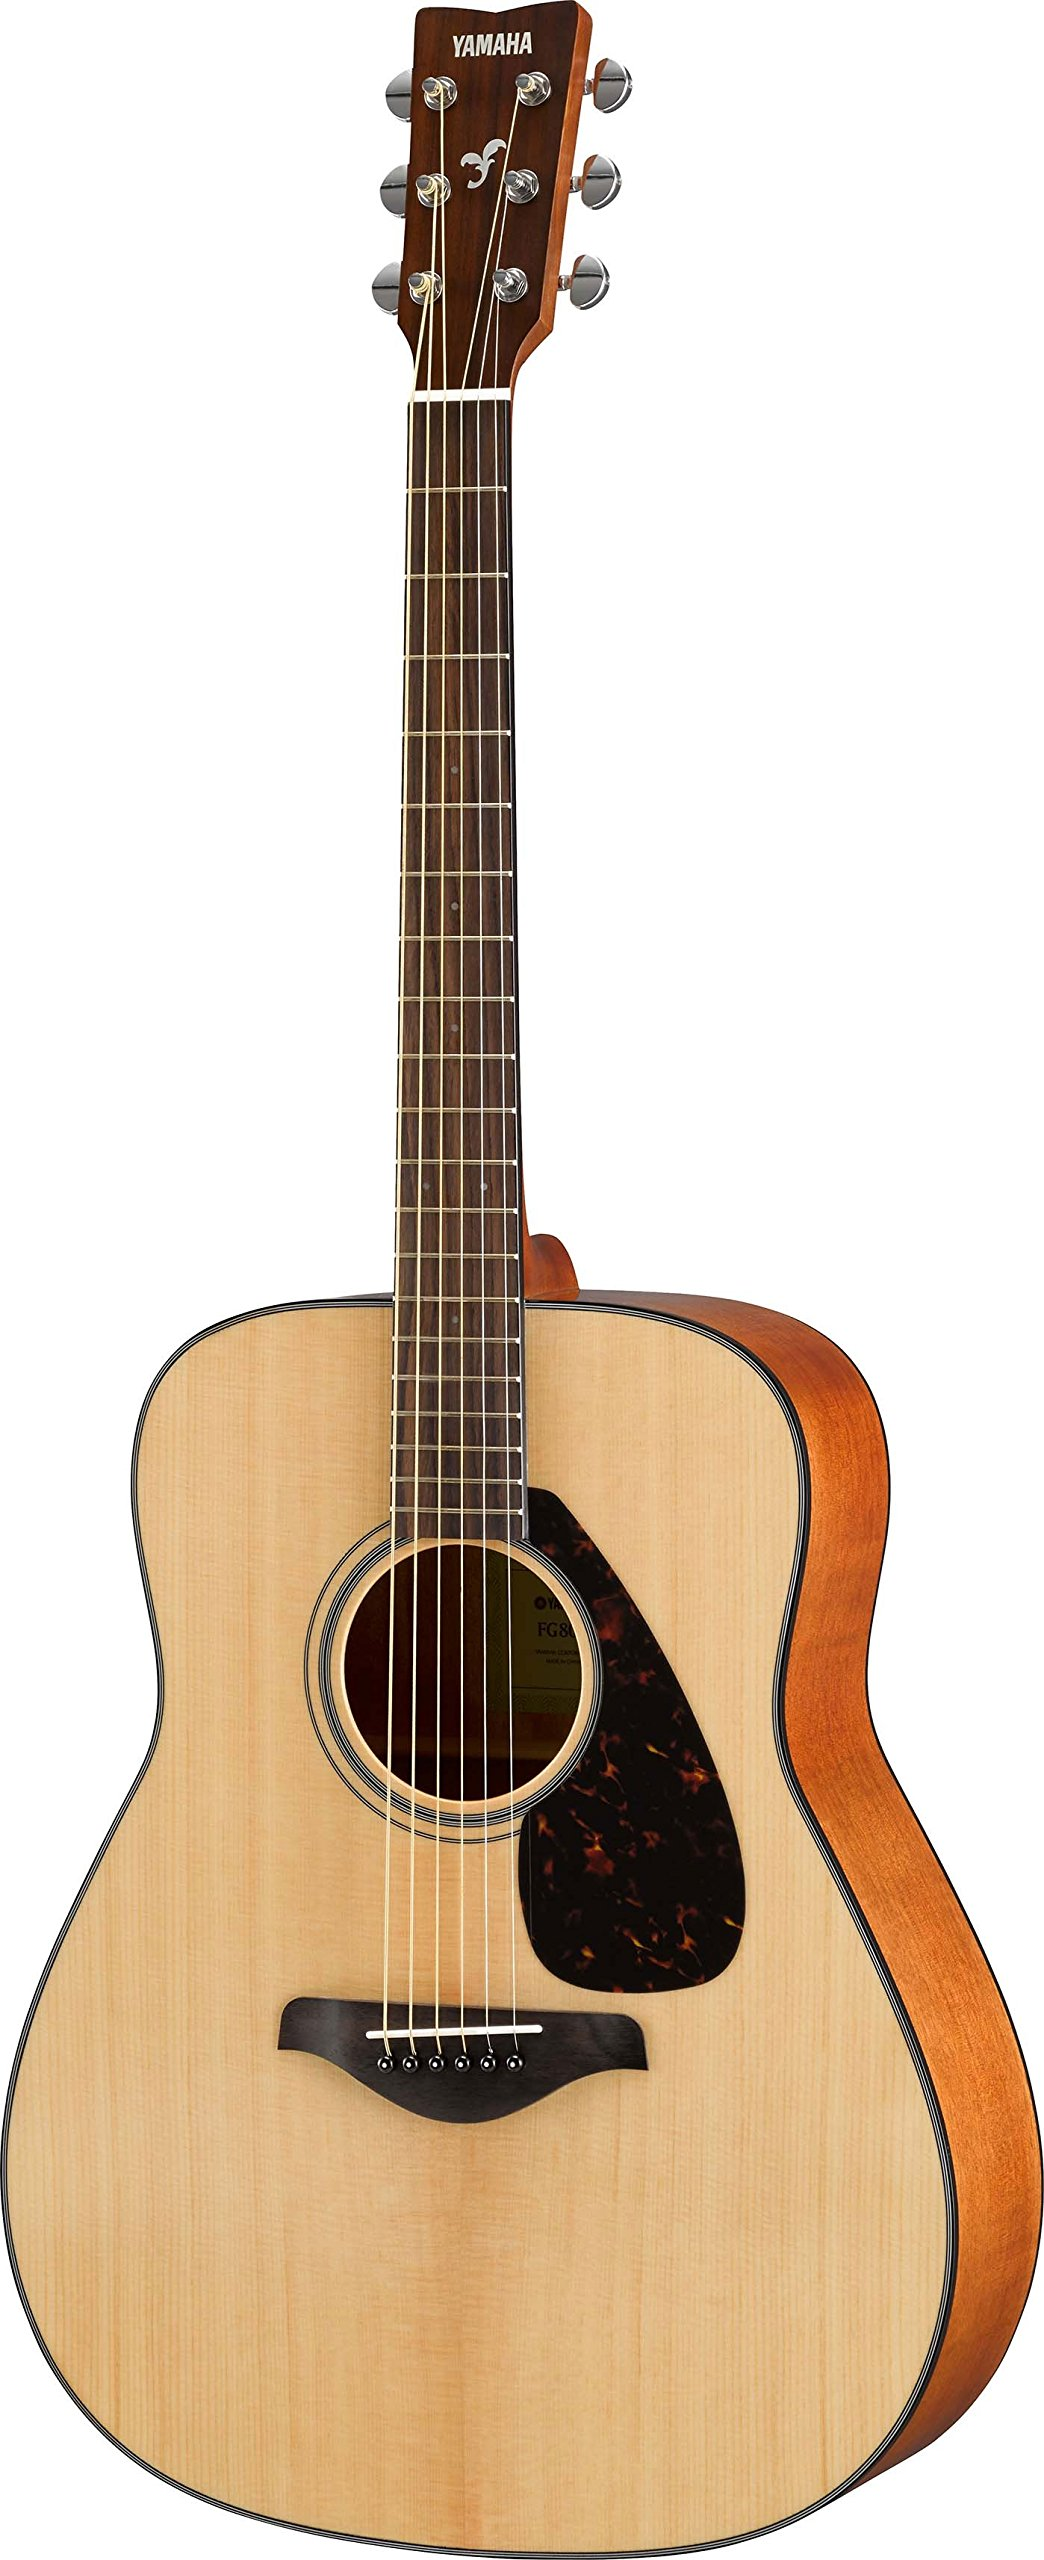 Yamaha FG800 Solid Top Acoustic Guitar by Yamaha (Image #1)